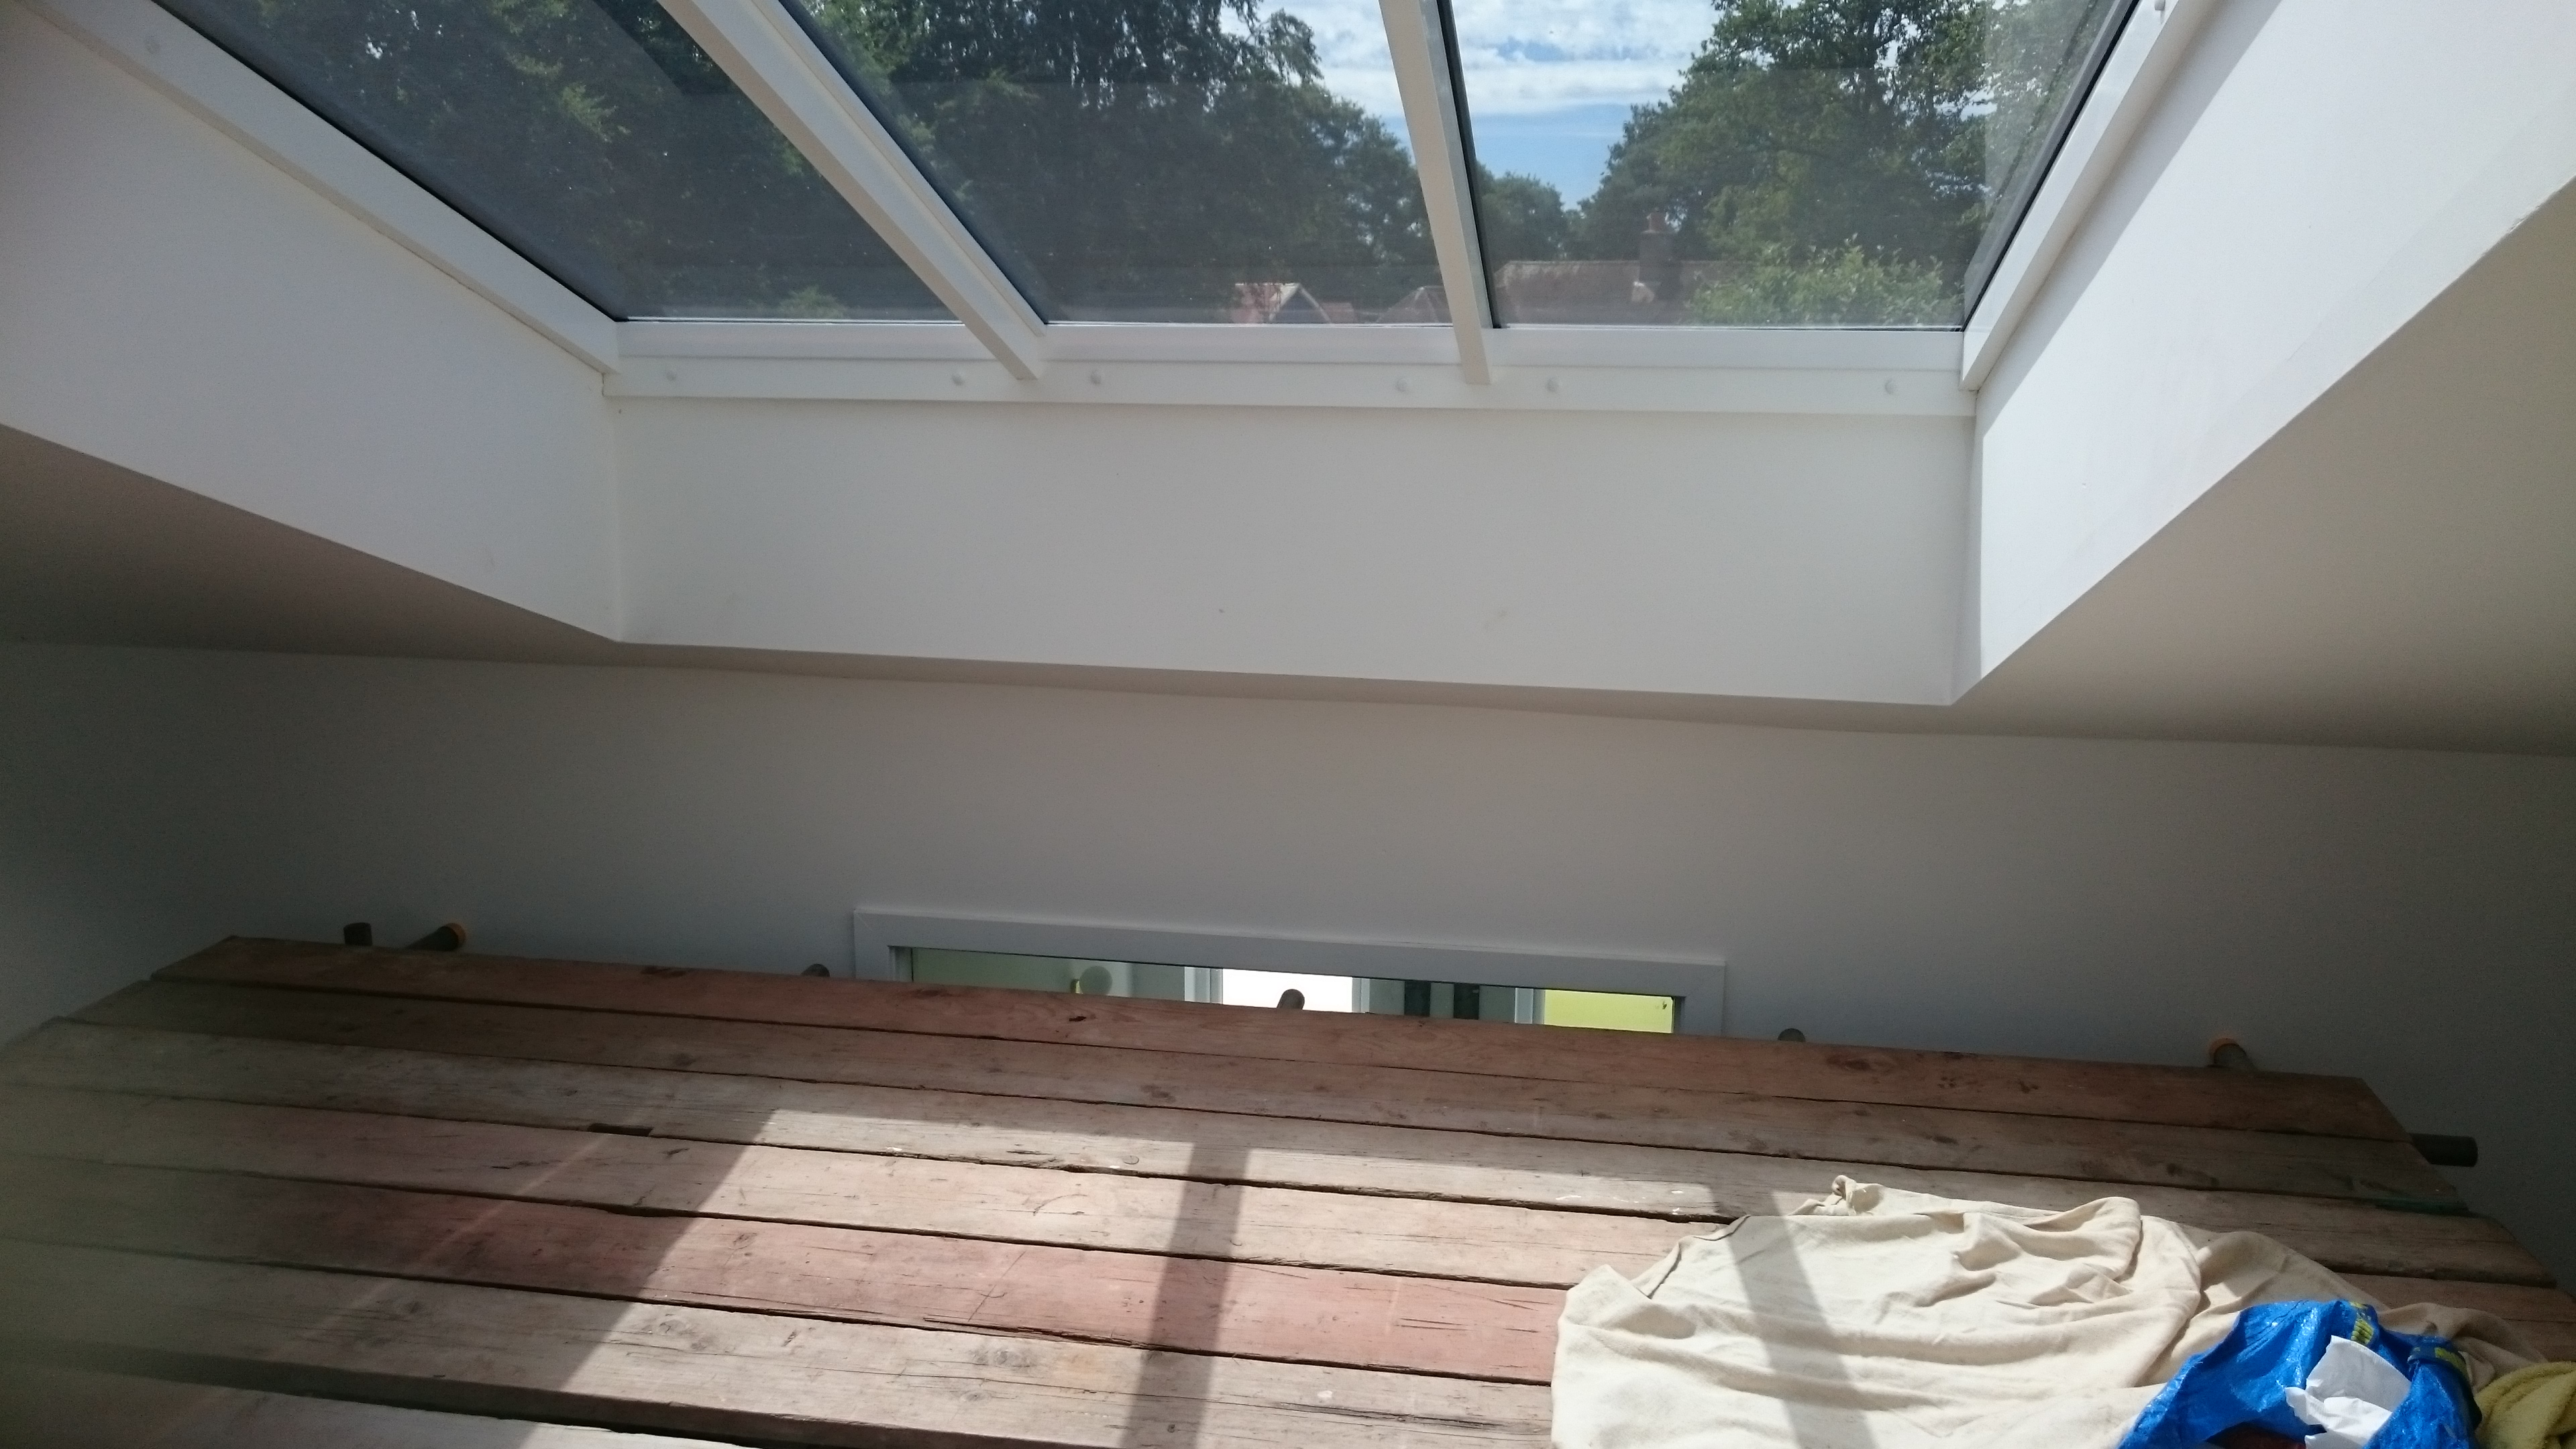 Solar film to be applied to glazing in this roof space - Tinting Express